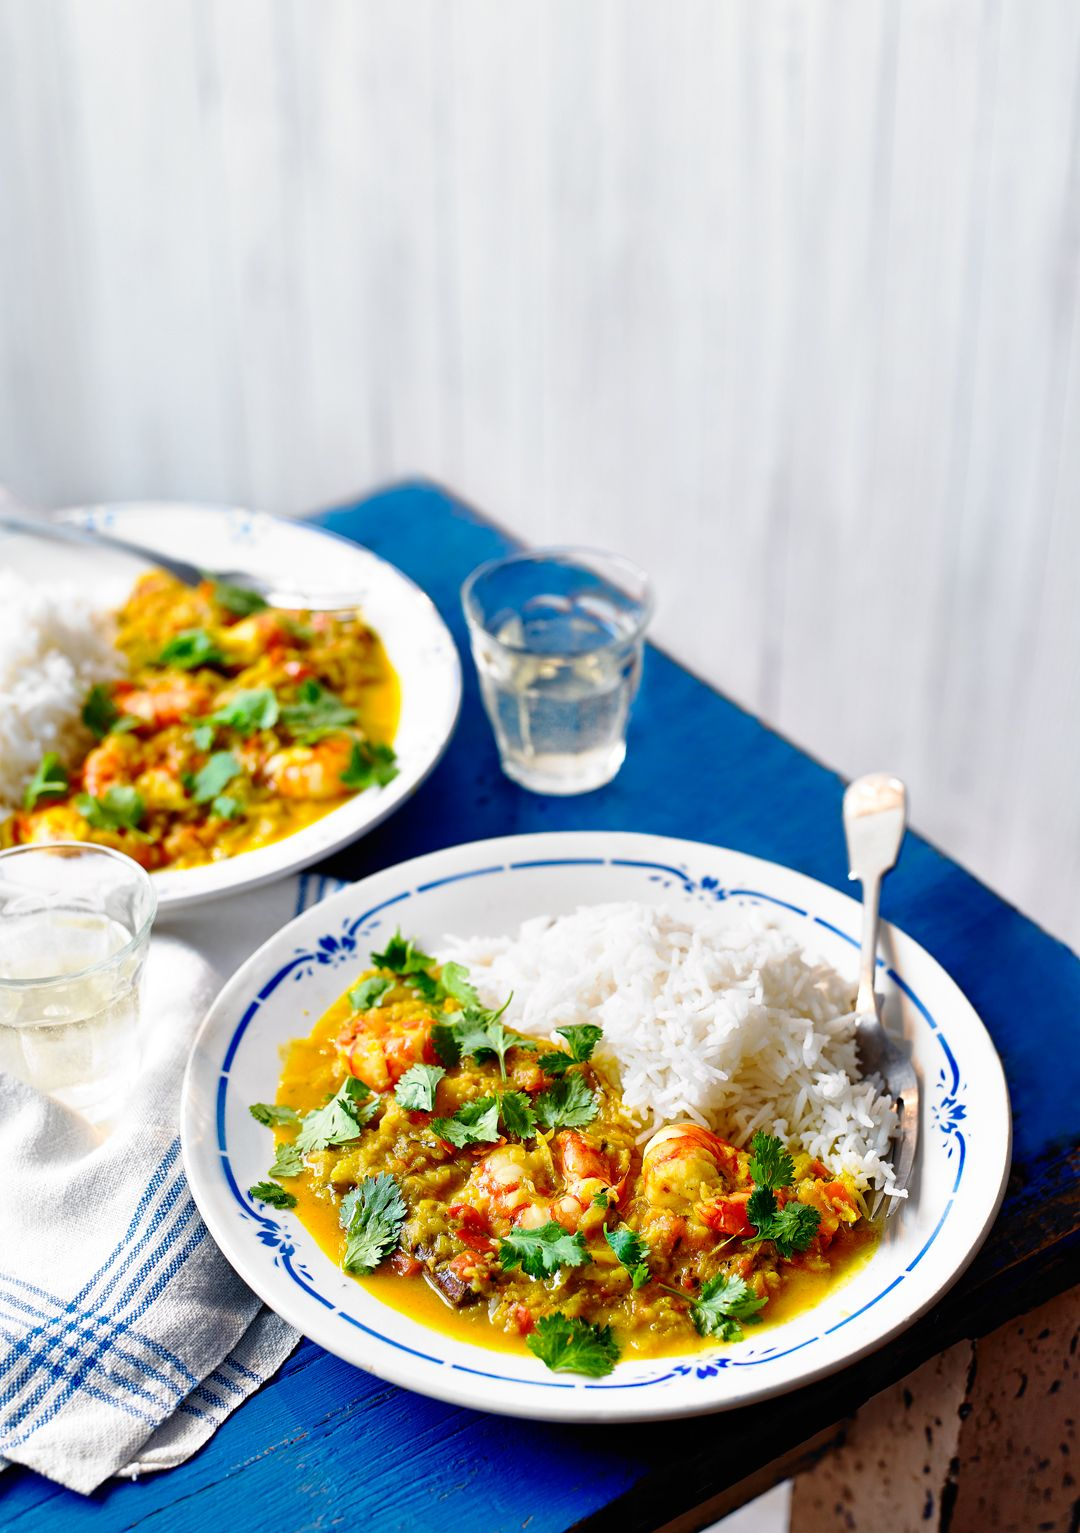 Keralan-Style Prawn and Coconut Curry